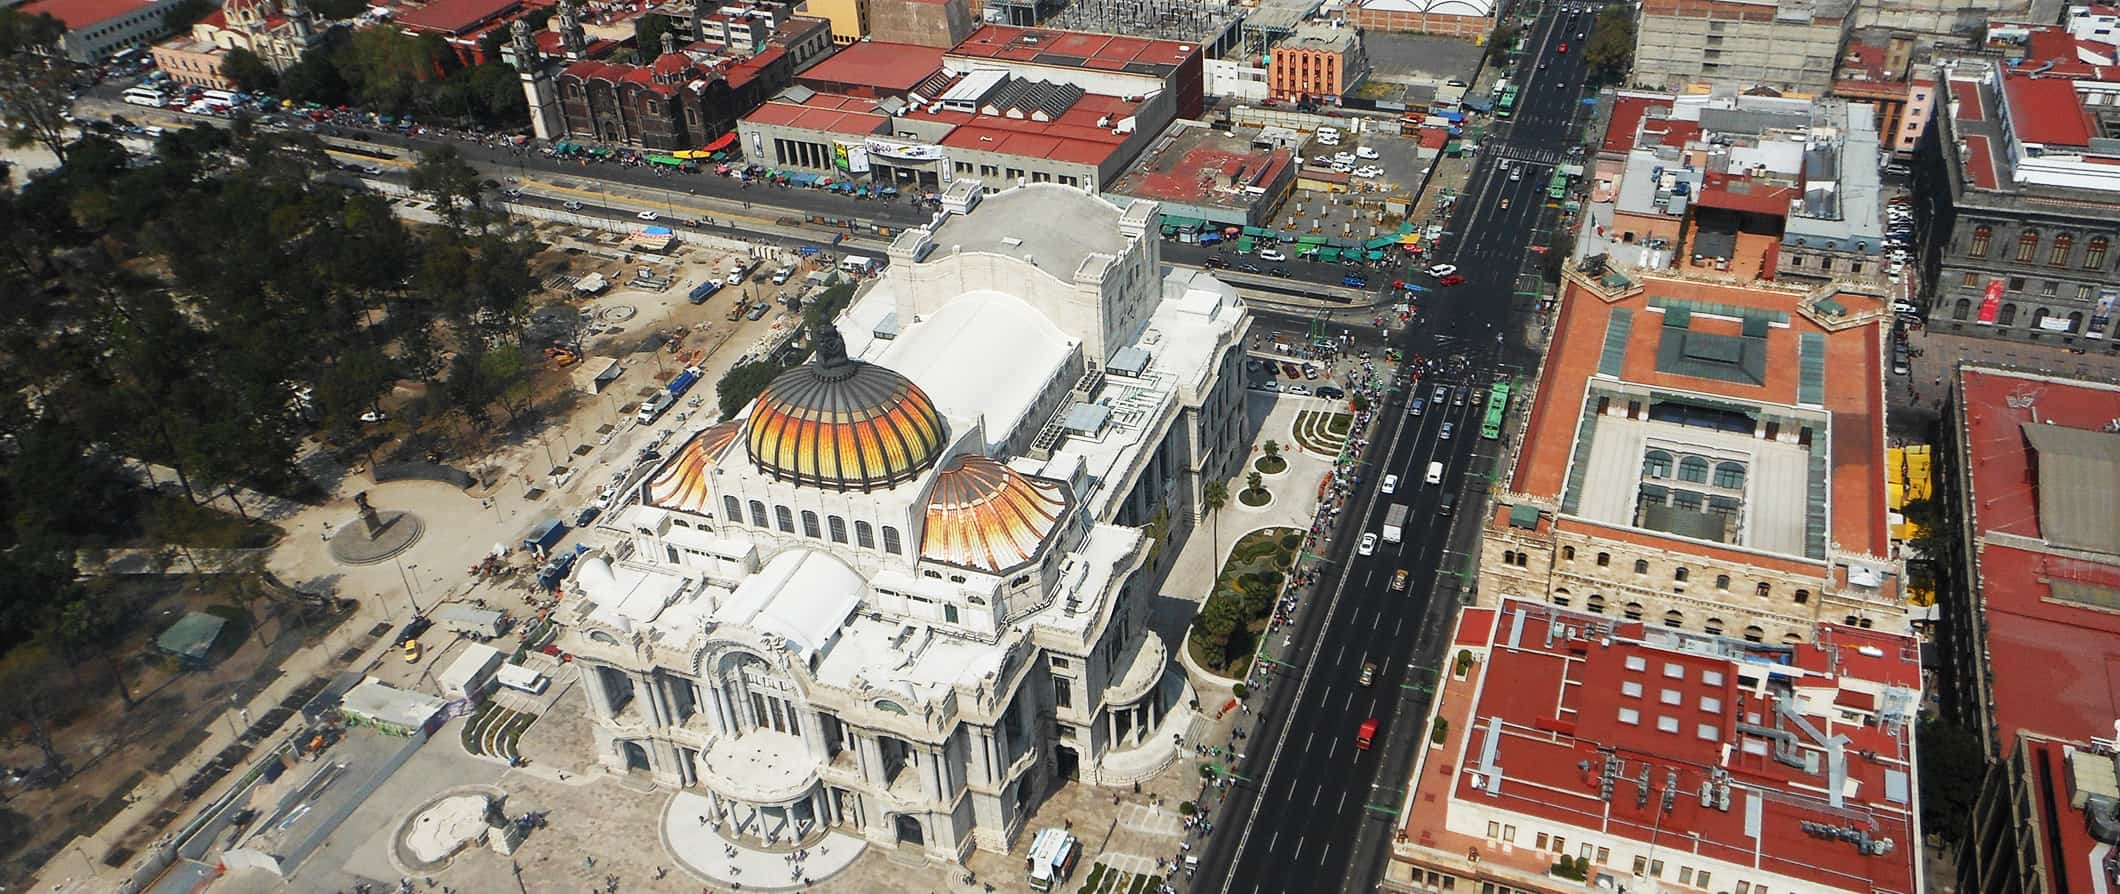 a view of Mexico City from the sky